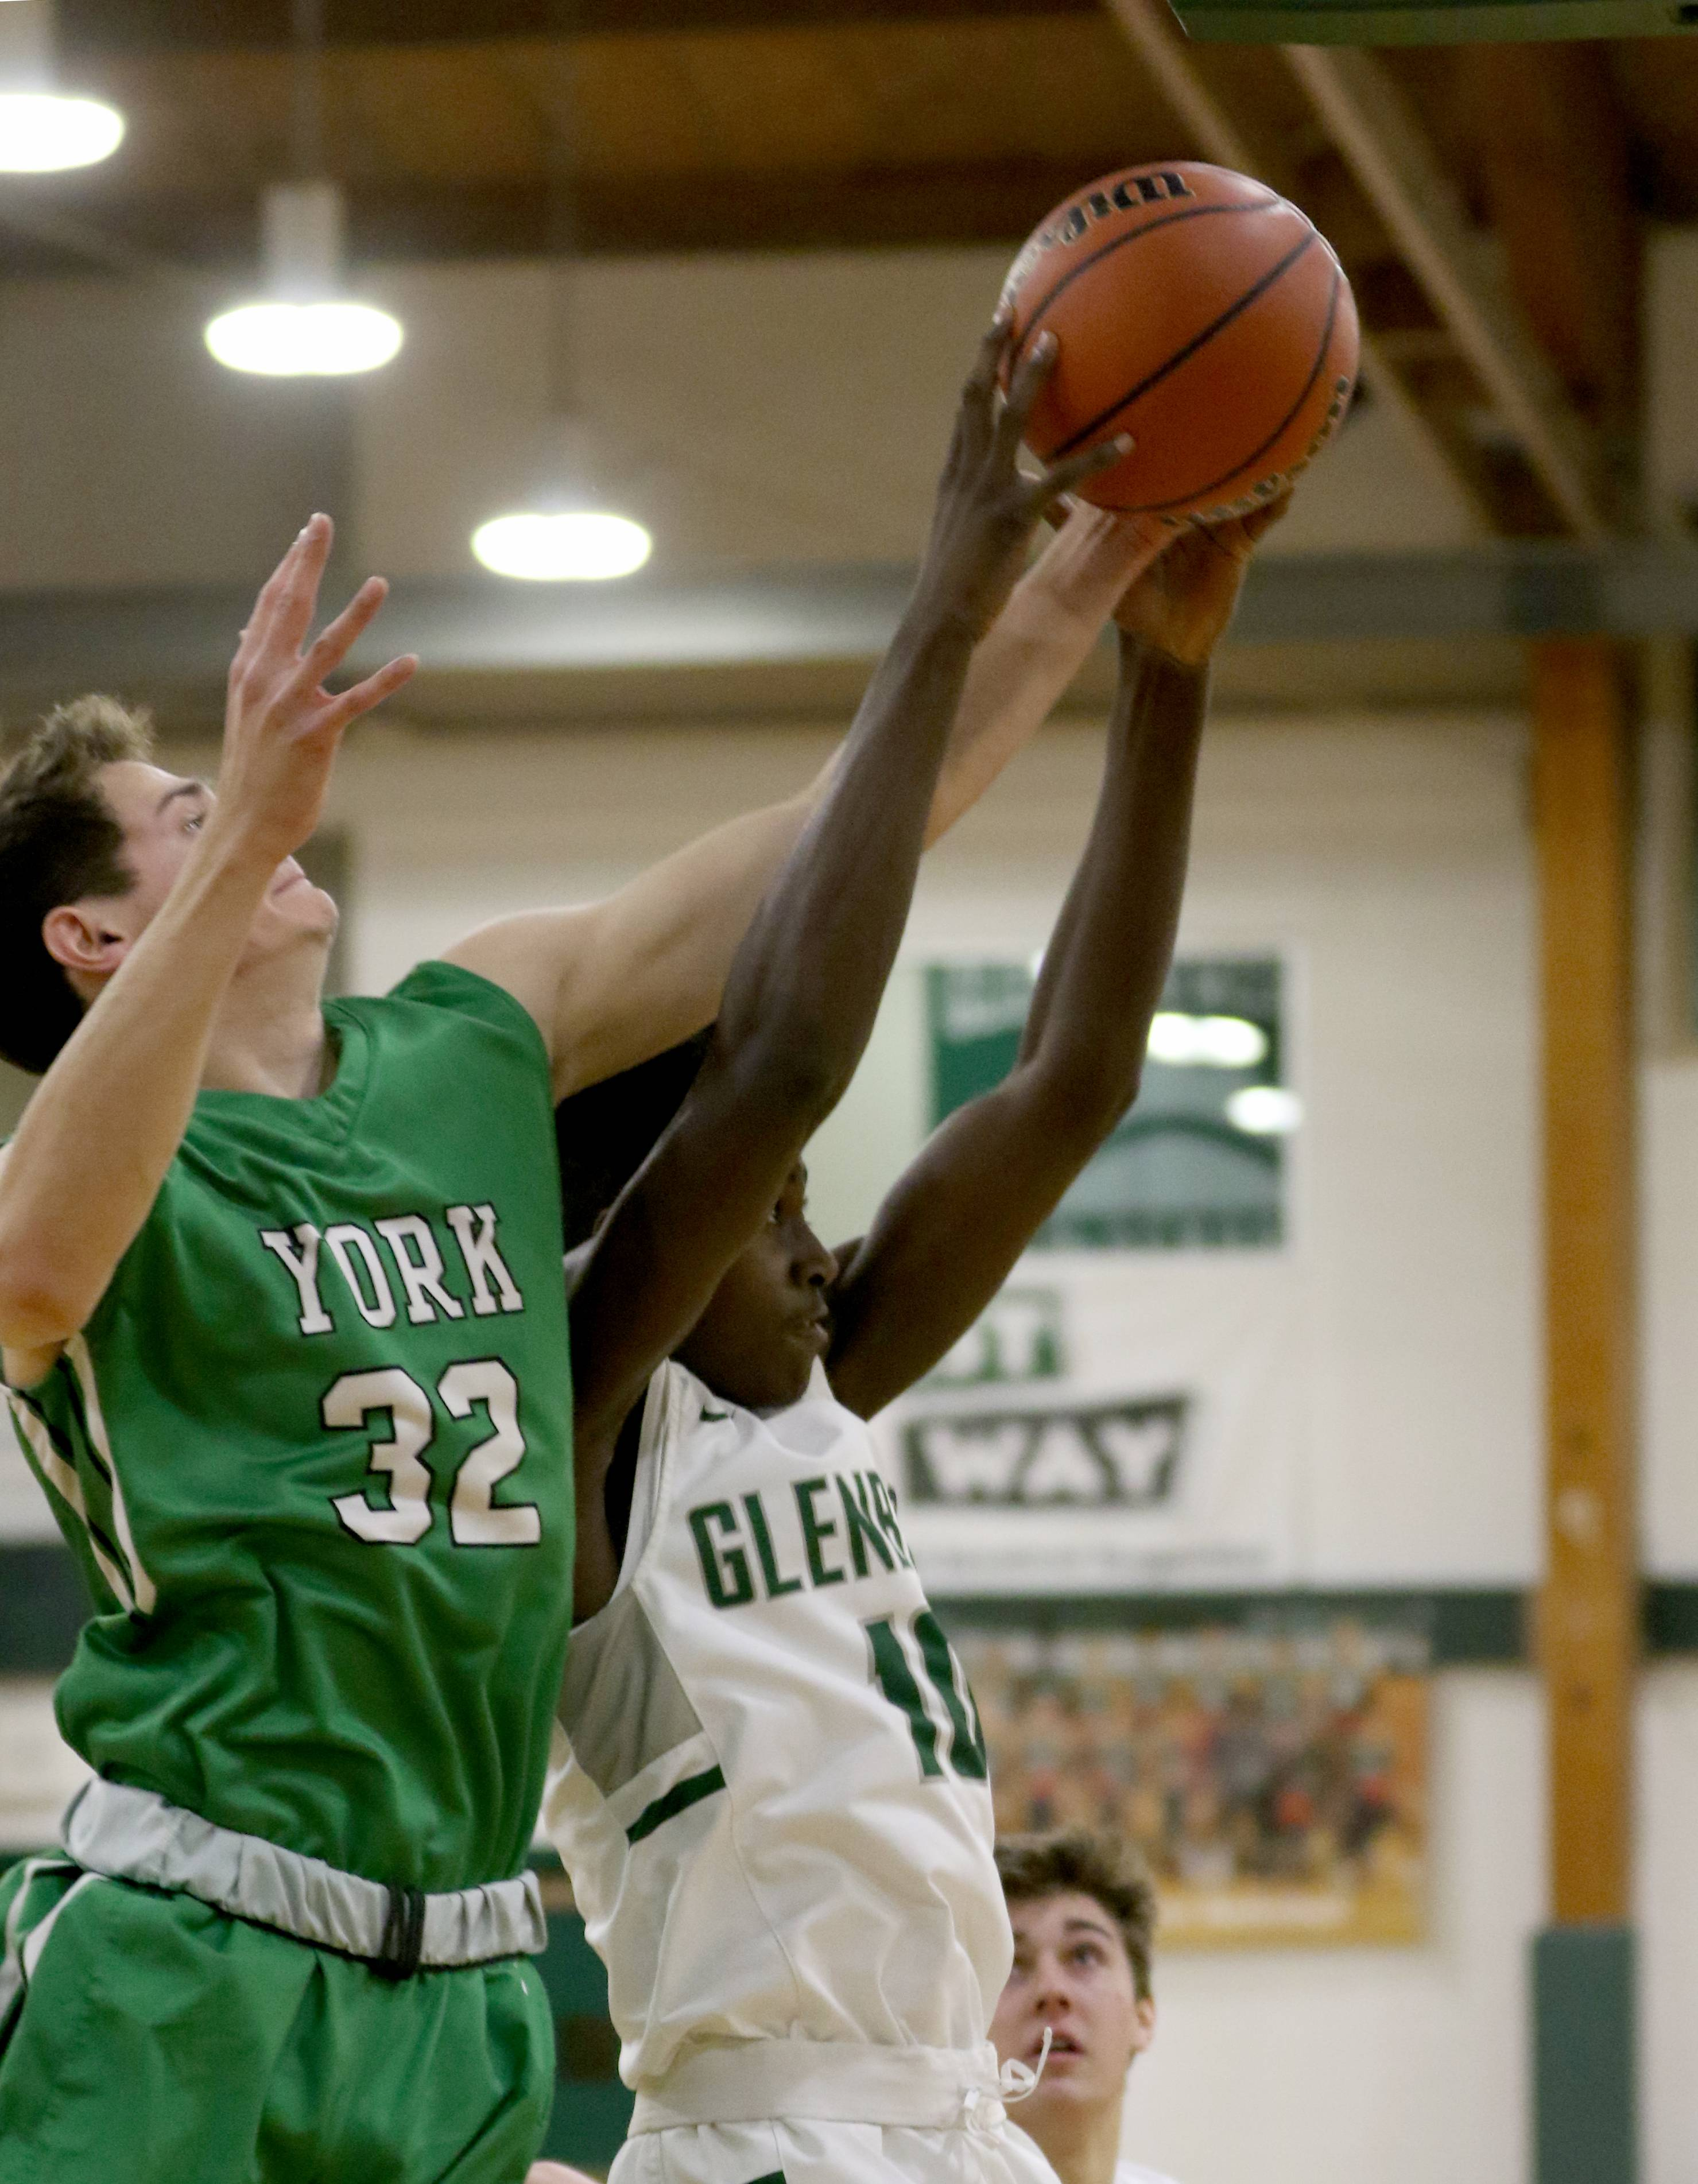 York's Erik Cohn, left, and Glenbard West's Griffin Foster battle during varsity boys basketball at Fred L. Biester Gymnasium on the campus of Glenbard West Tuesday night.